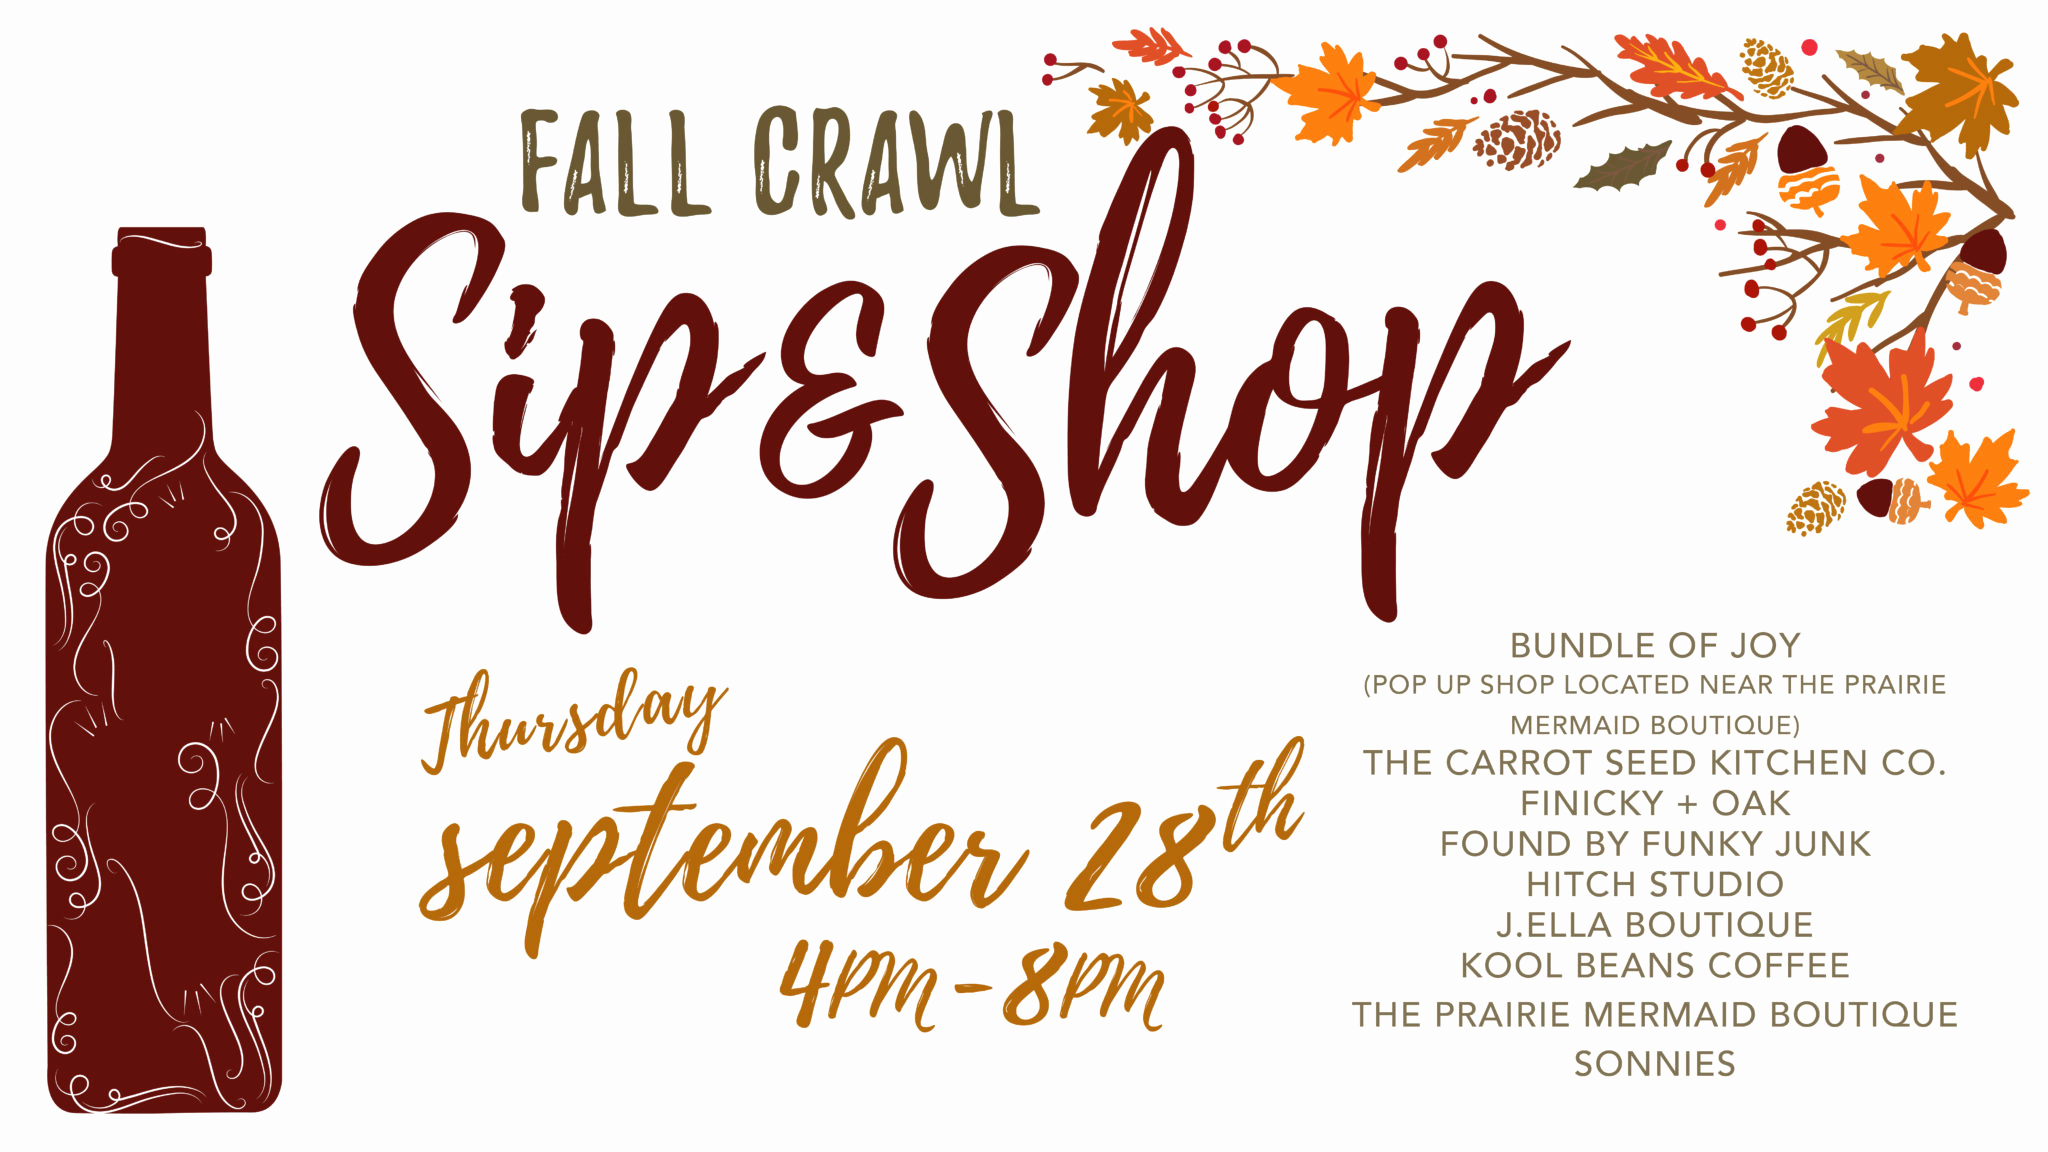 Sip and Shop Invitation Beautiful Downtown Brookings Shopping event Sip & Shop Fall Crawl